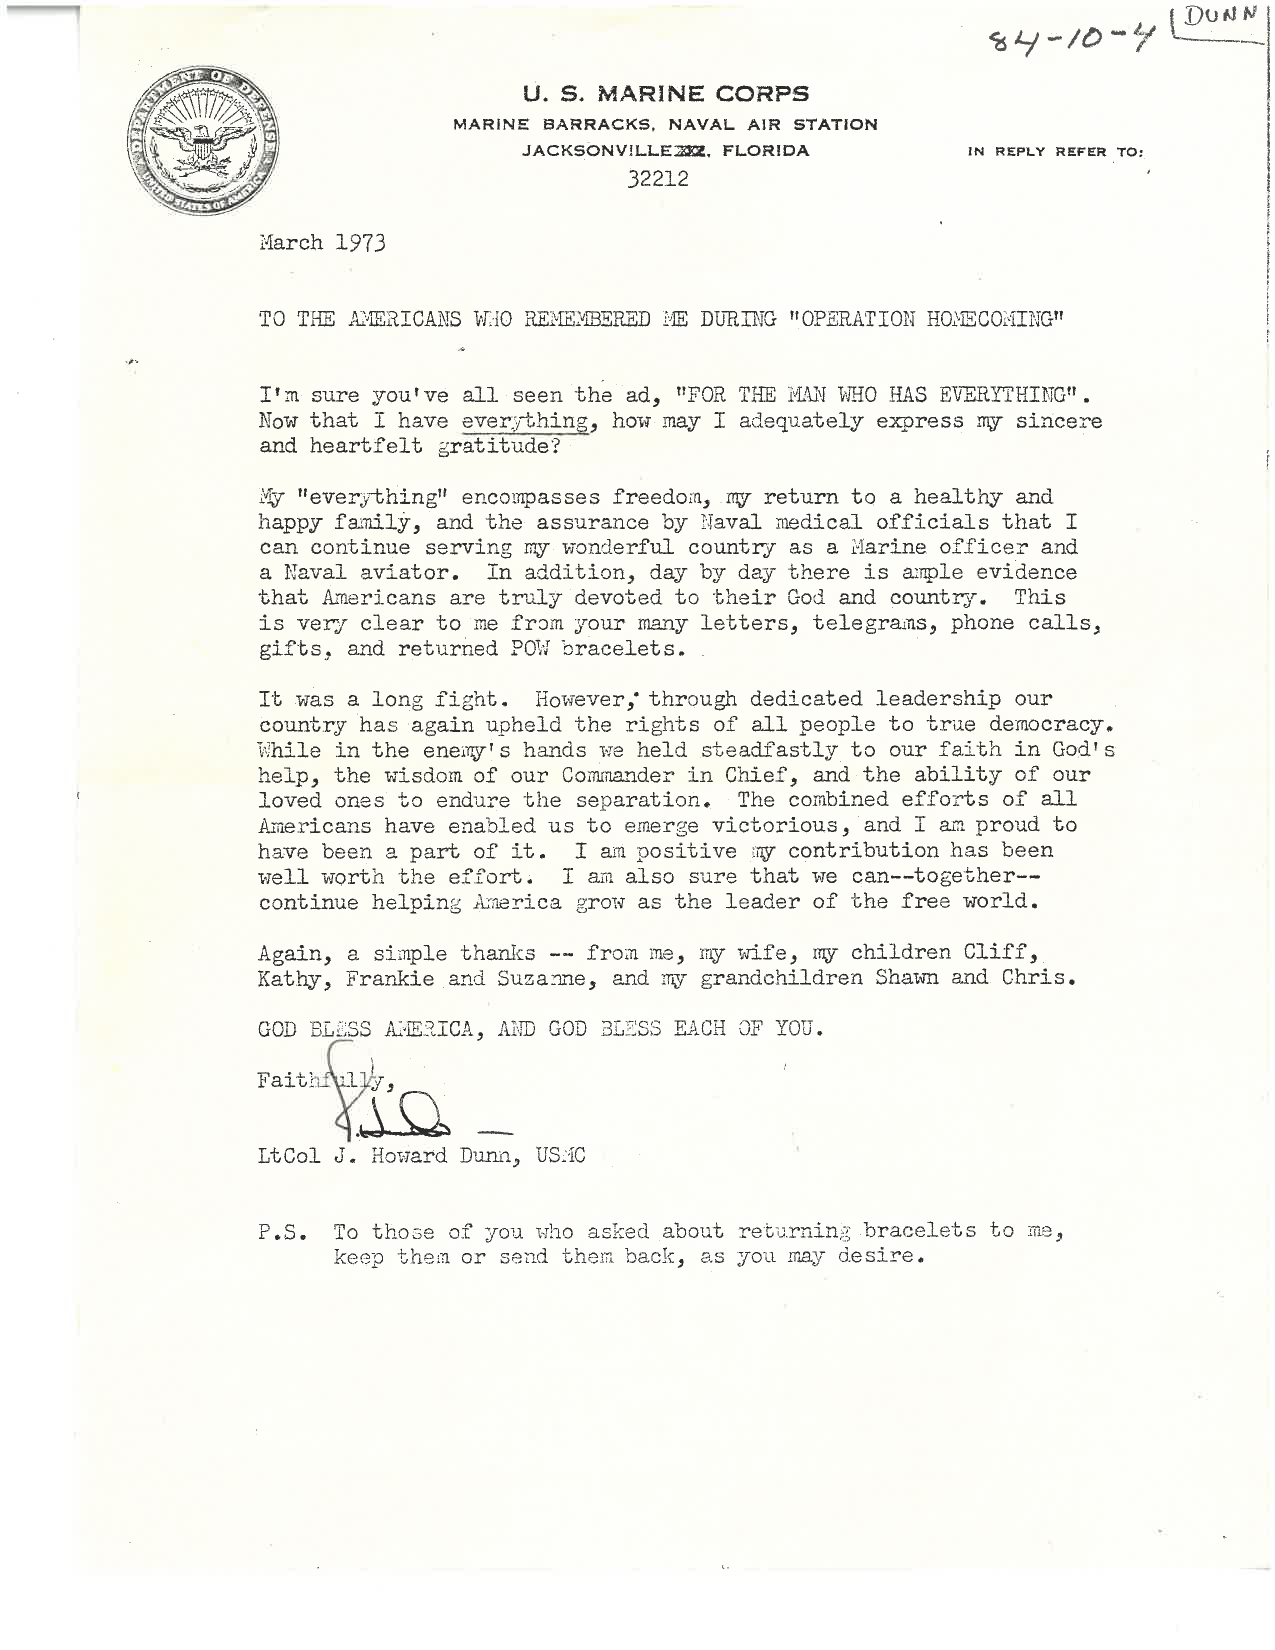 Letter from  ltCol. J.Howard Dunn